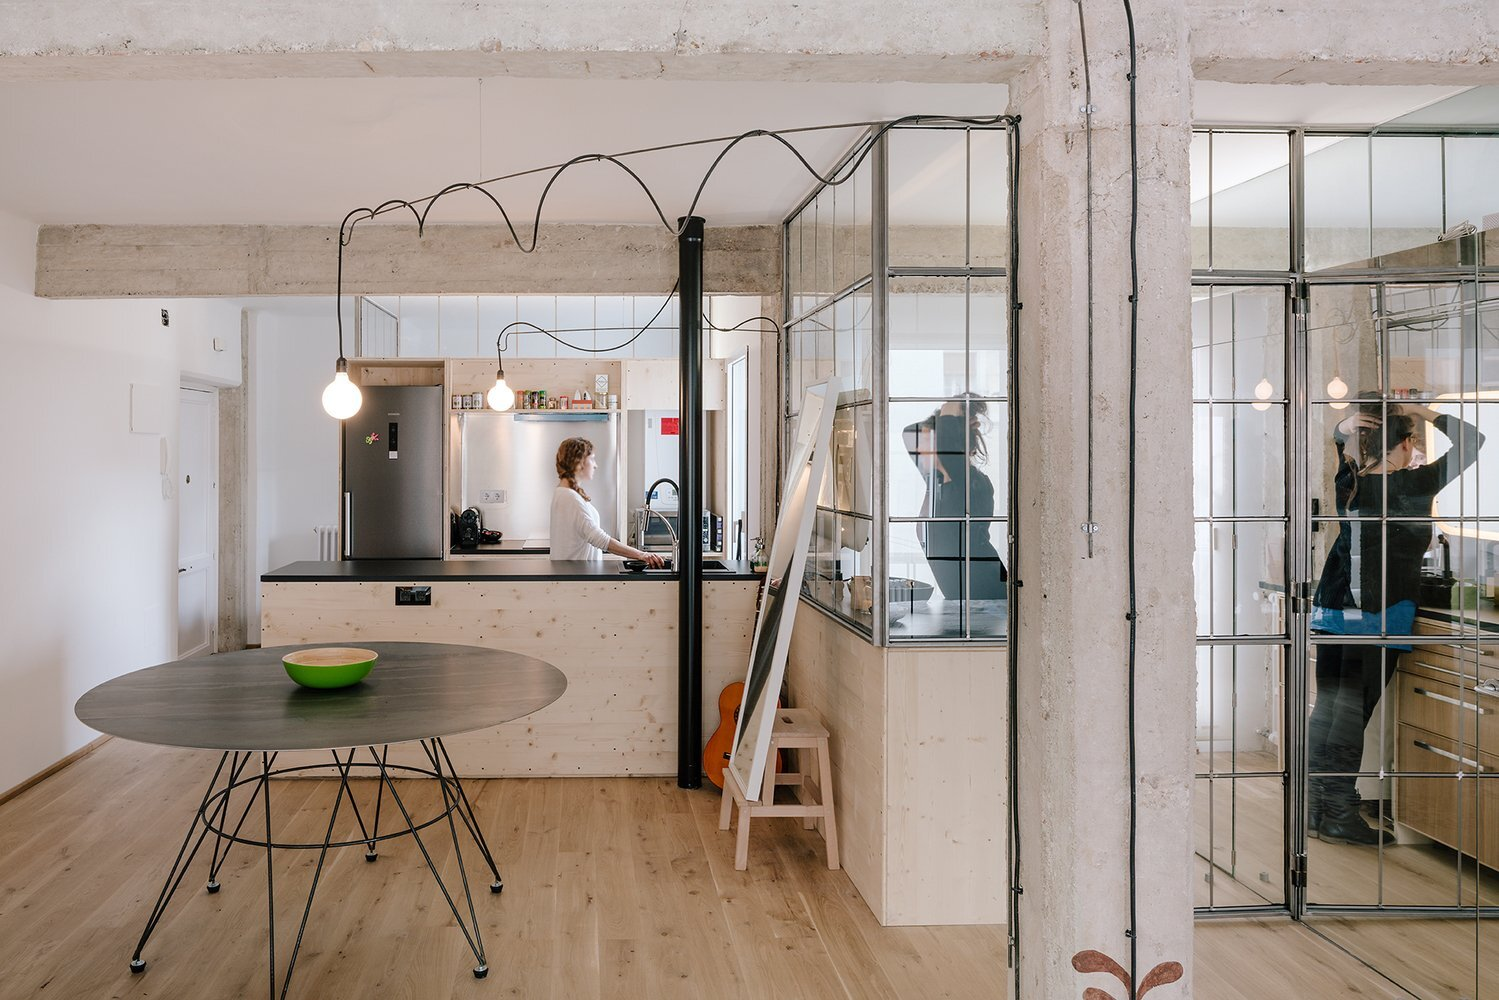 Parais - Manuel Ocaña - Madrid Spain - Kitchen and Dining Area - Humble Homes